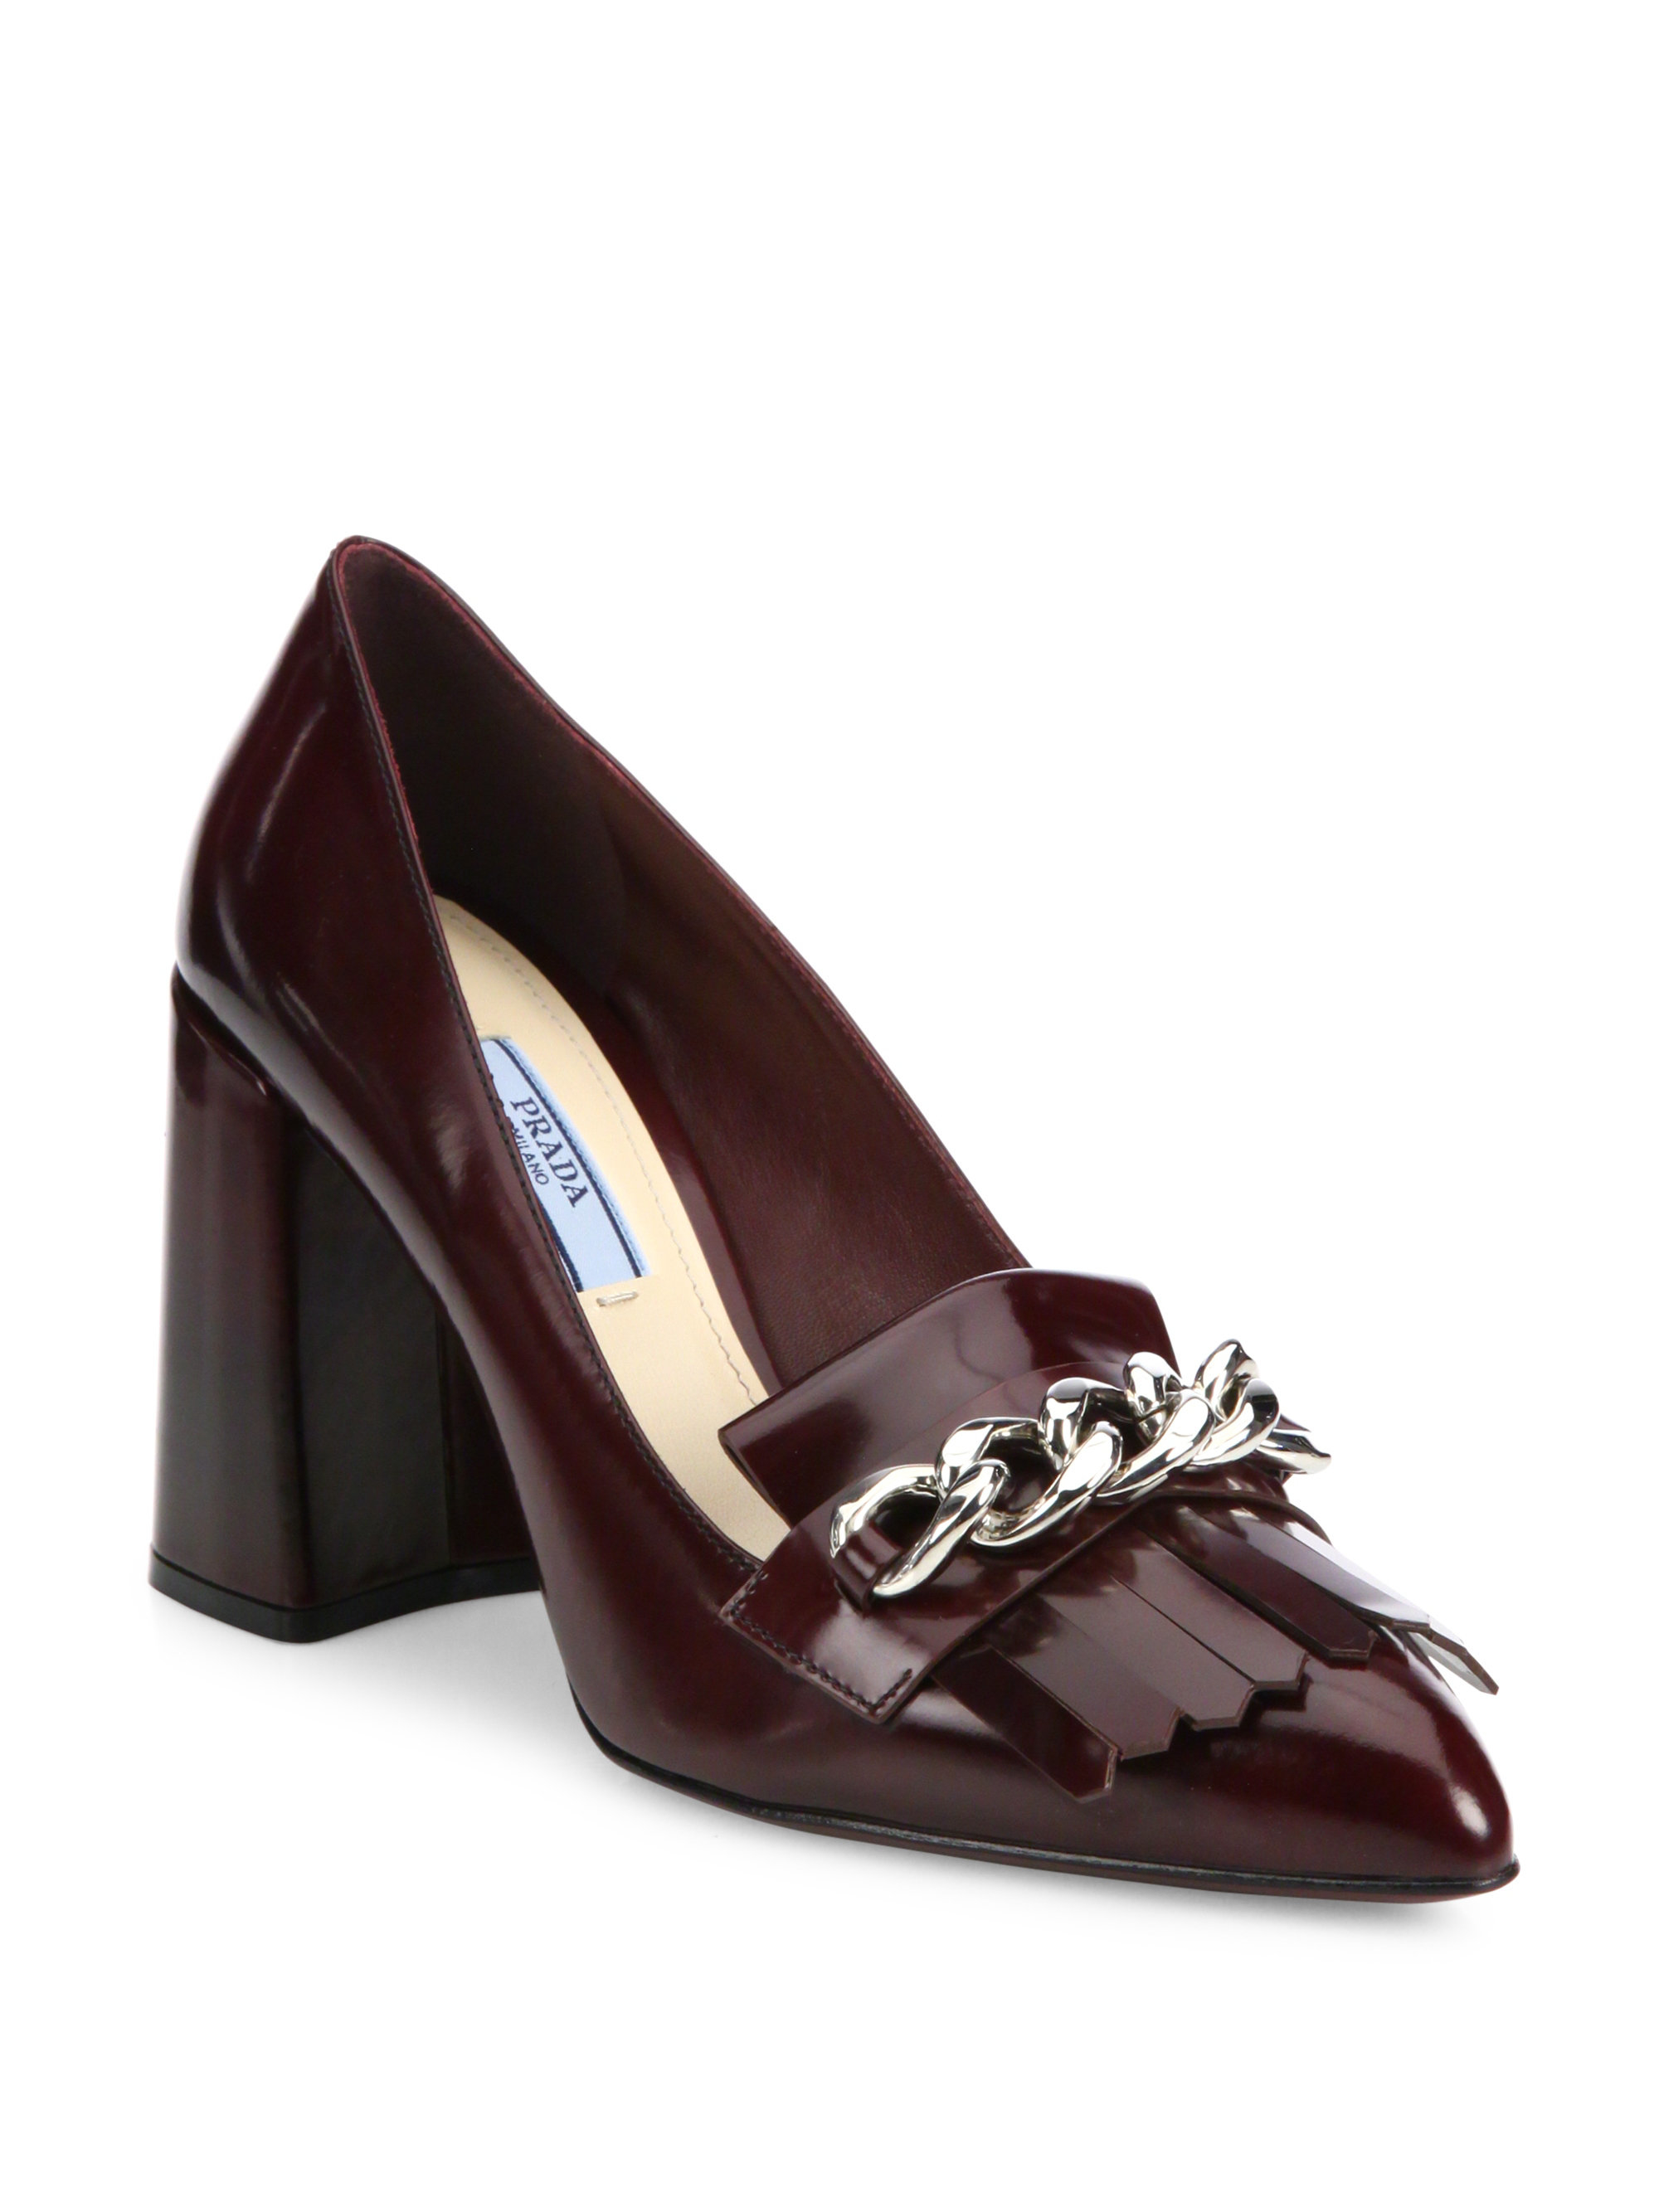 fa486820c4d5 Lyst - Prada Kiltie Chain Patent Leather Block-heel Pumps in Brown